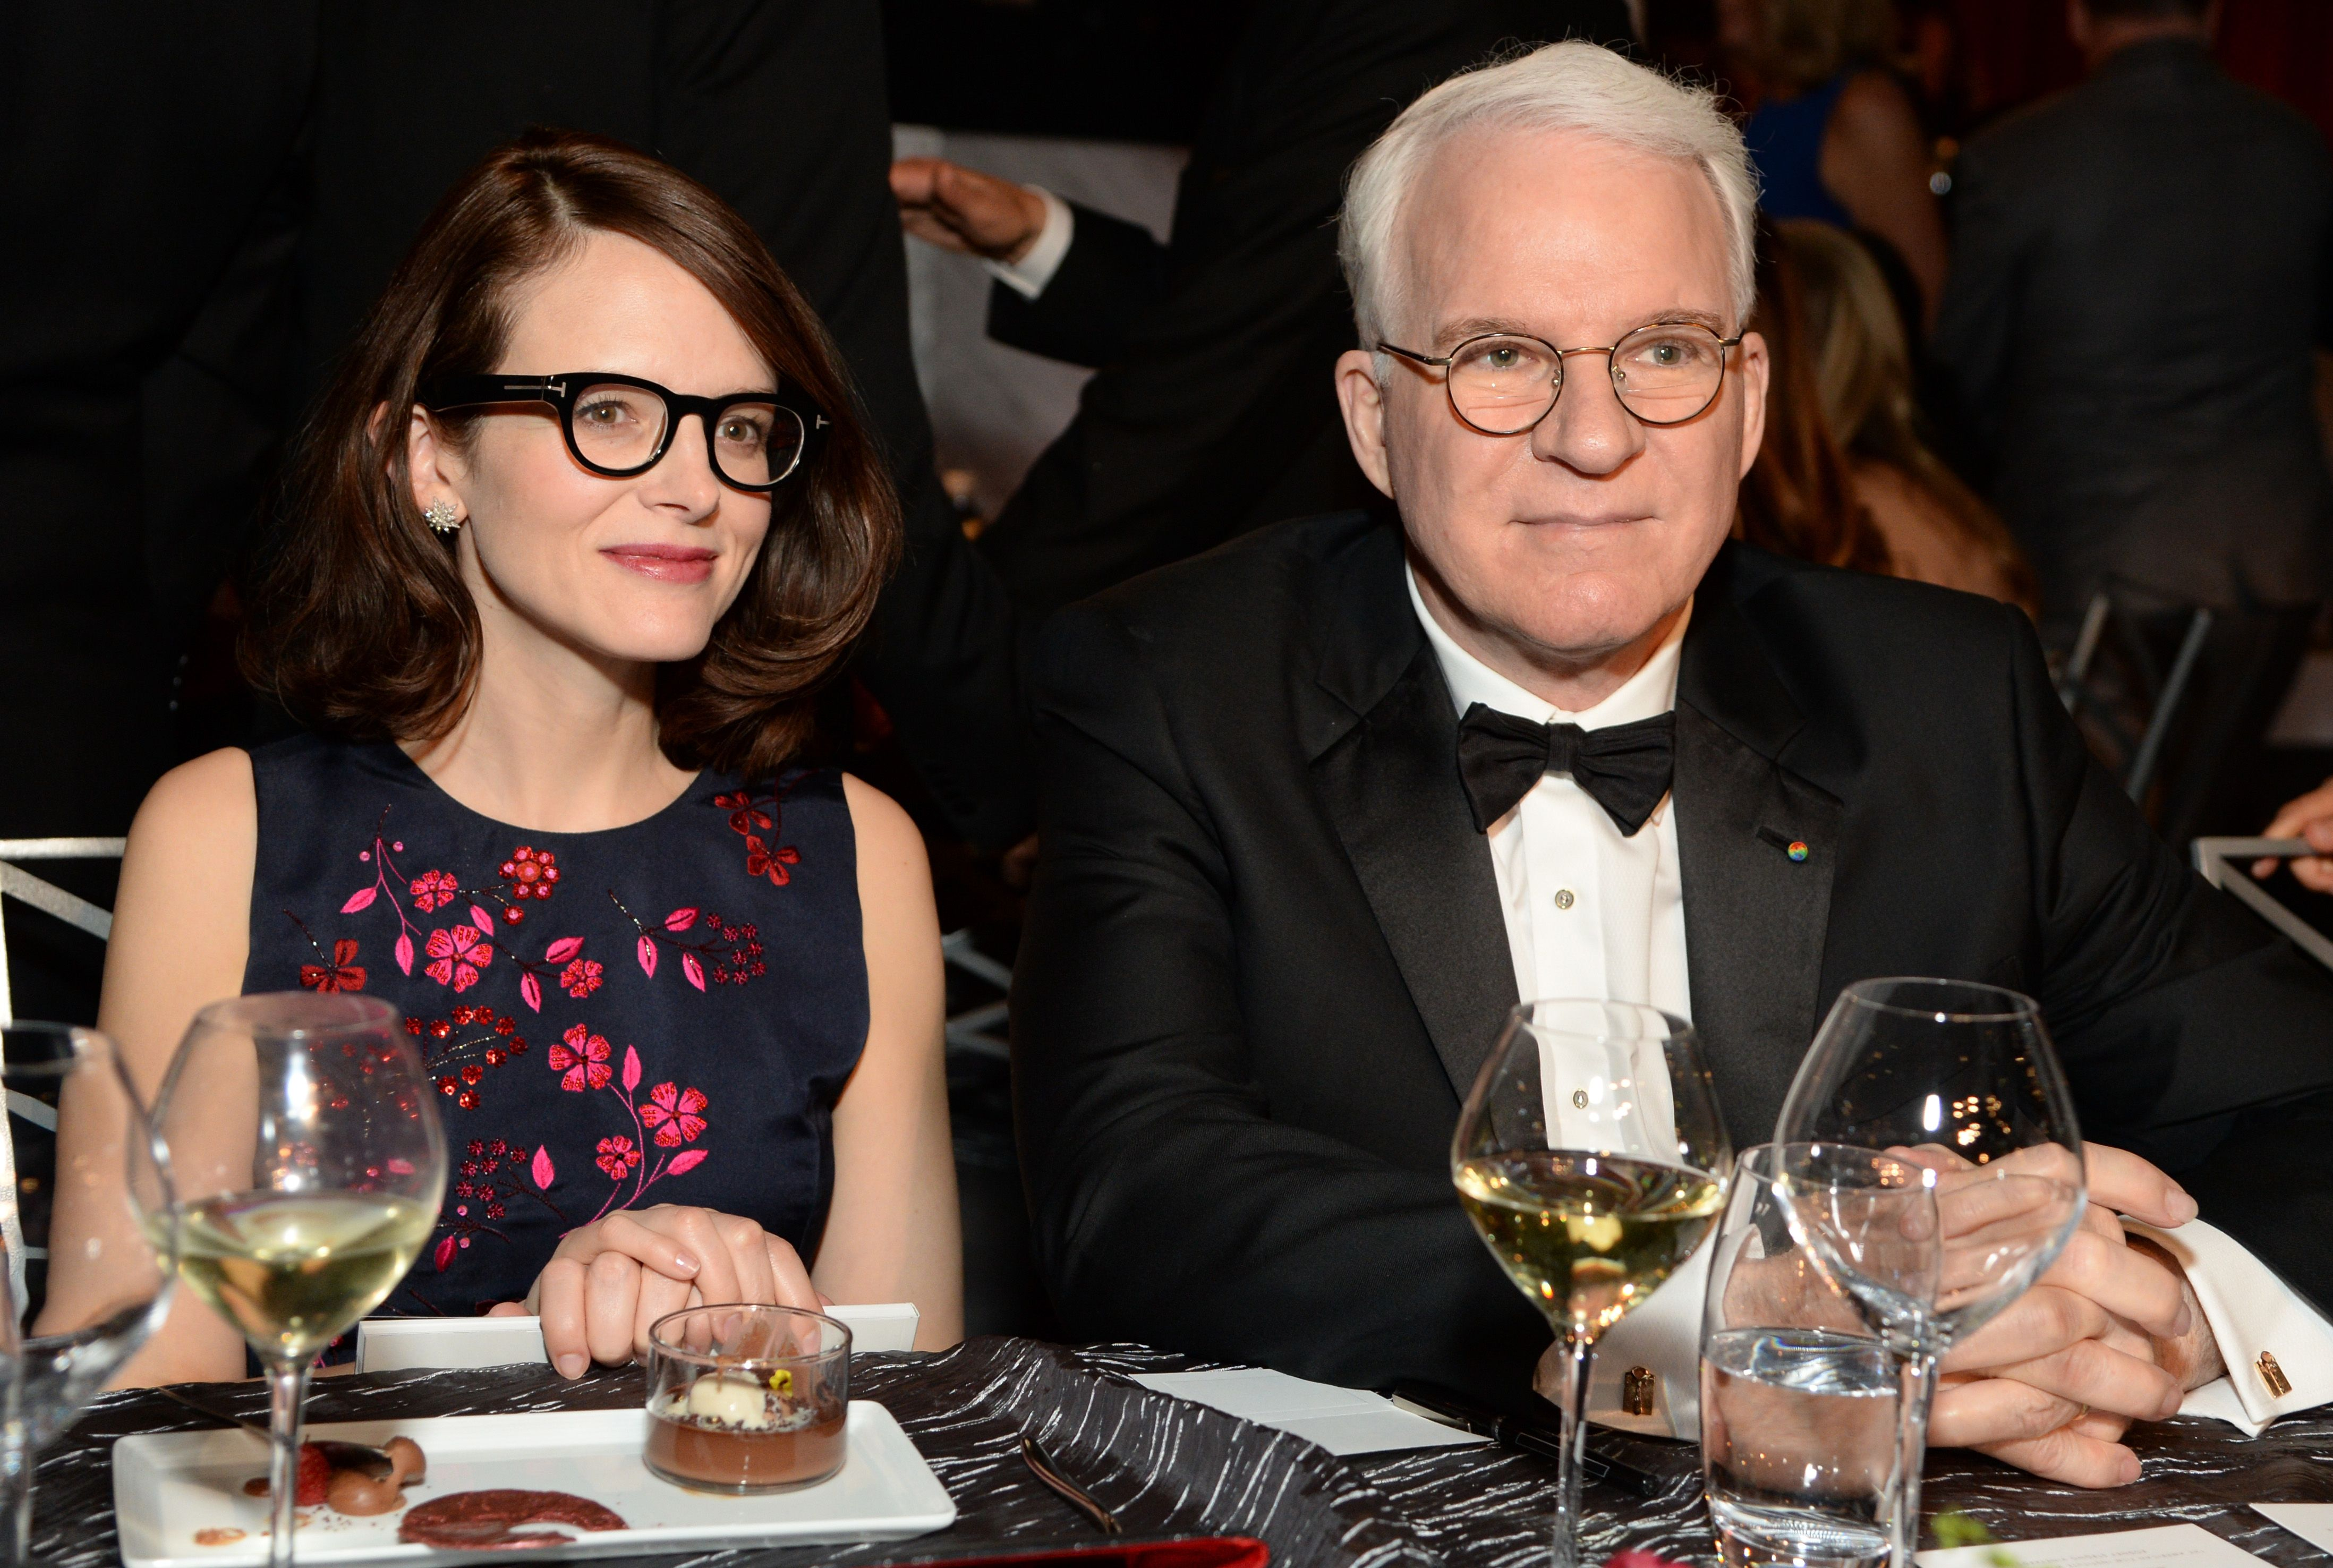 Writer Anne Stringfield and honoree Steve Martin at the 43rd AFI Life Achievement Award Gala honoring Steve Martin at Dolby Theatre on June 4, 2015 | Photo: Getty Images